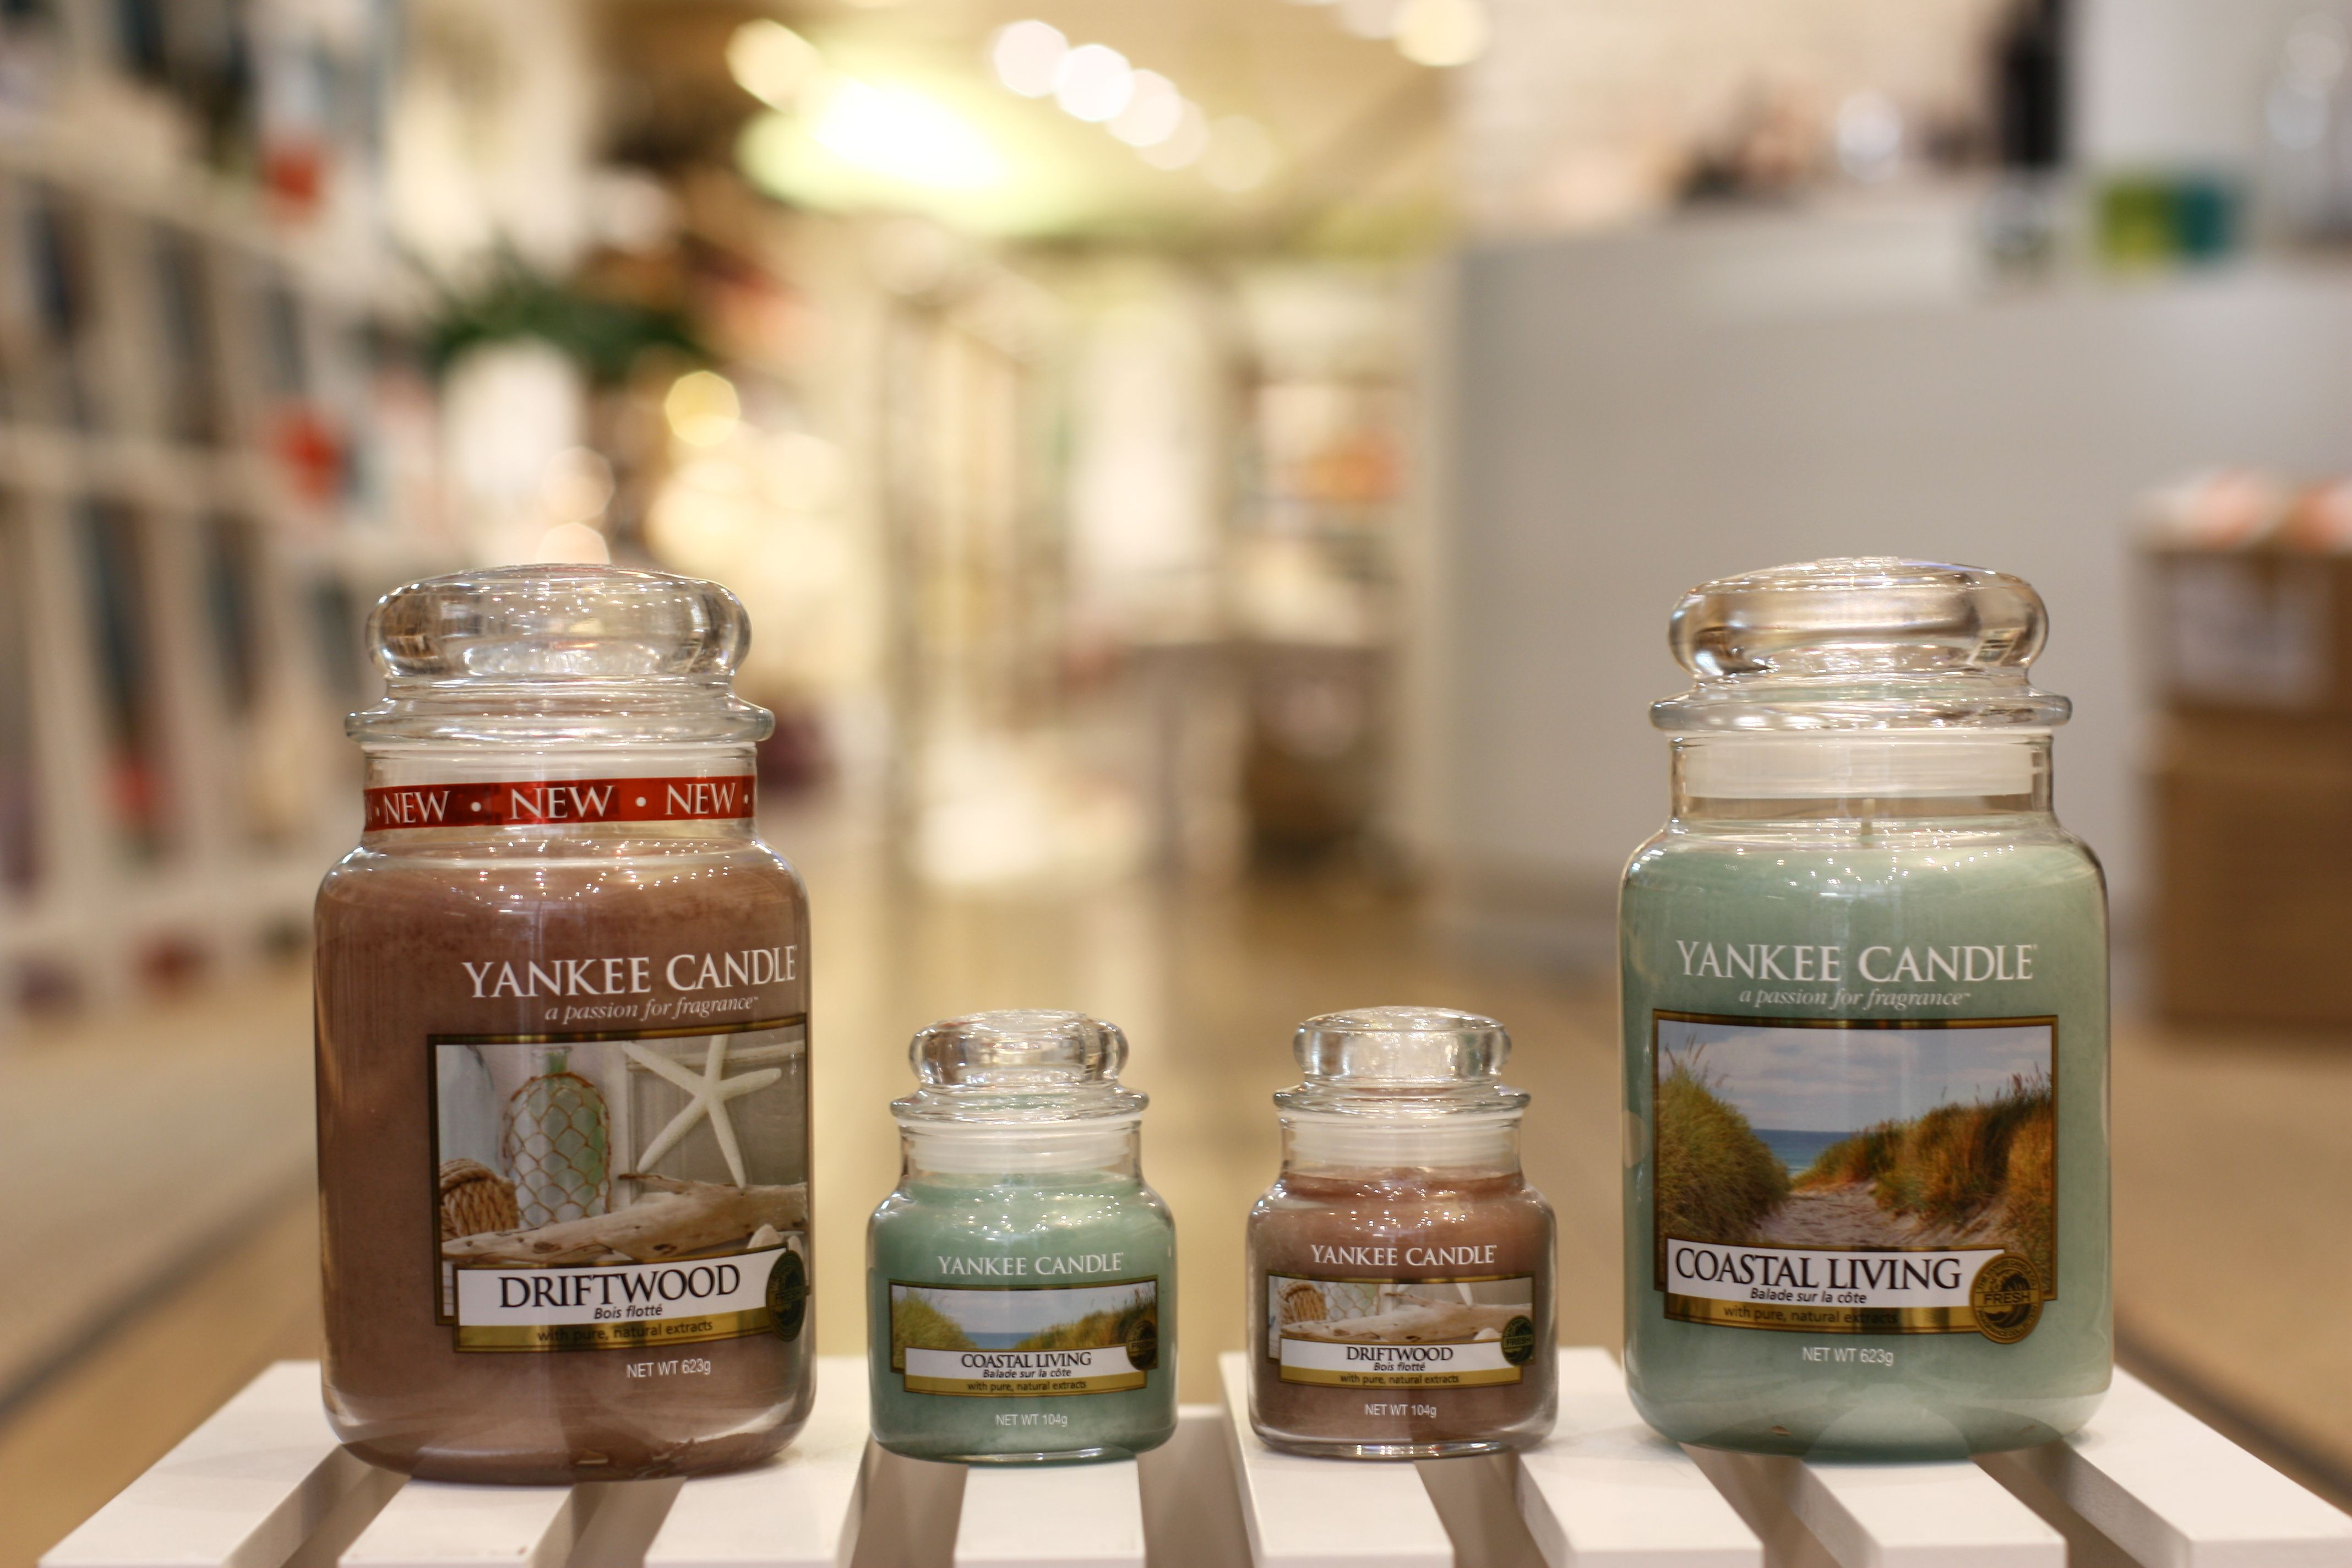 Duo de bougies coastal living u driftwood yankee candle